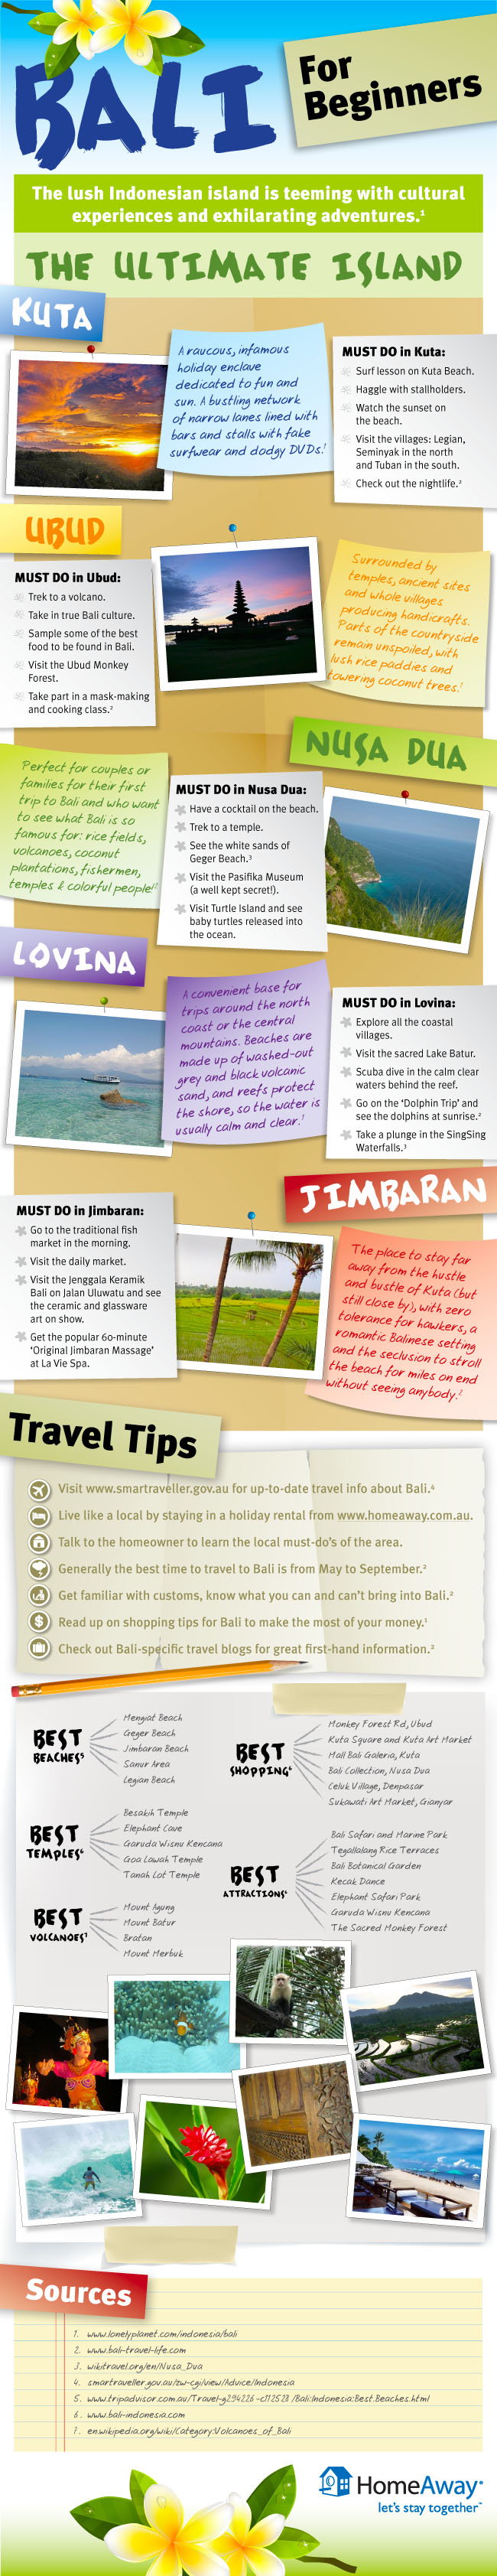 02 bali-travel-infographic